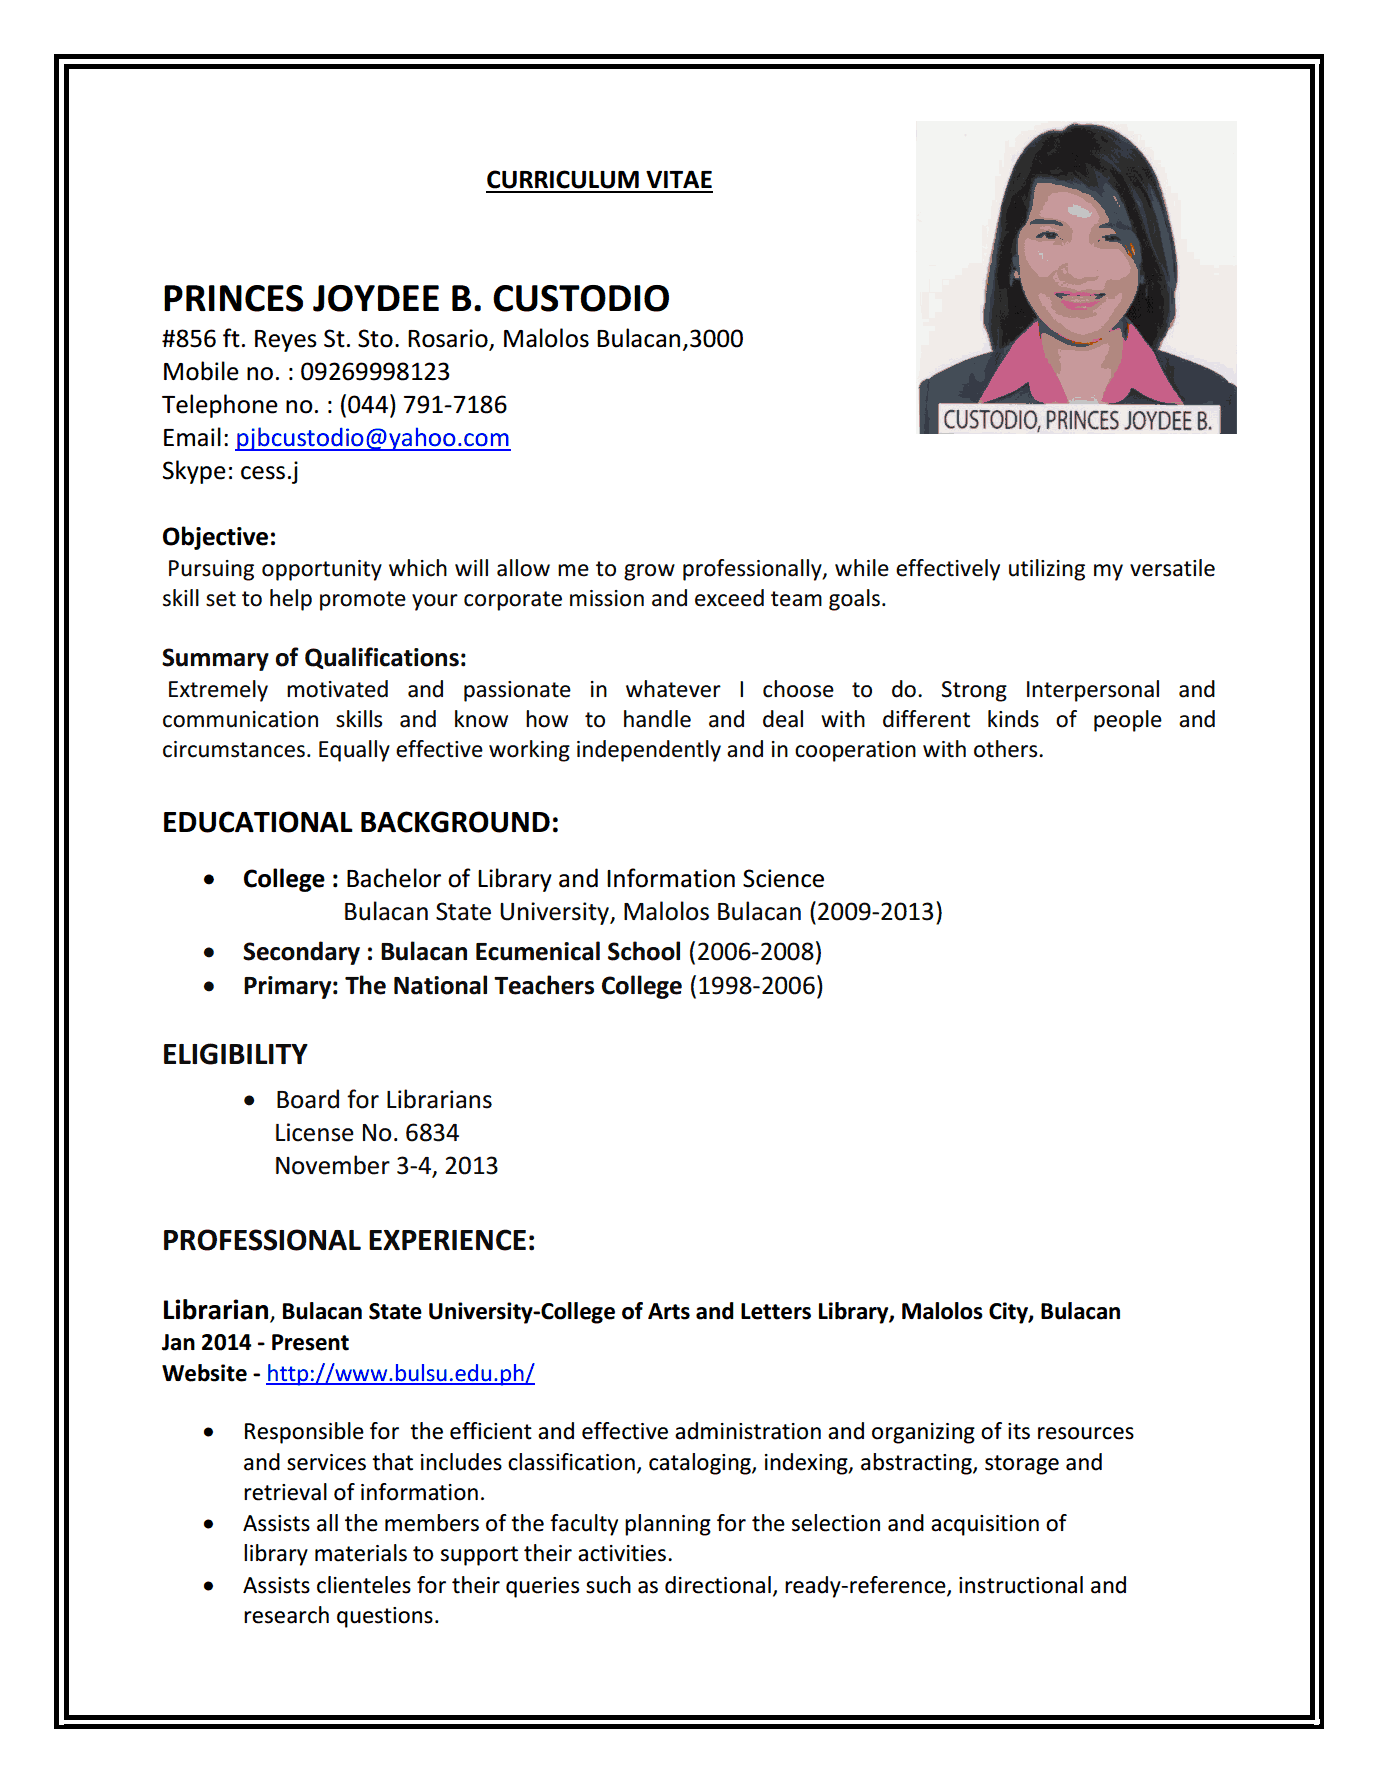 resume to hire